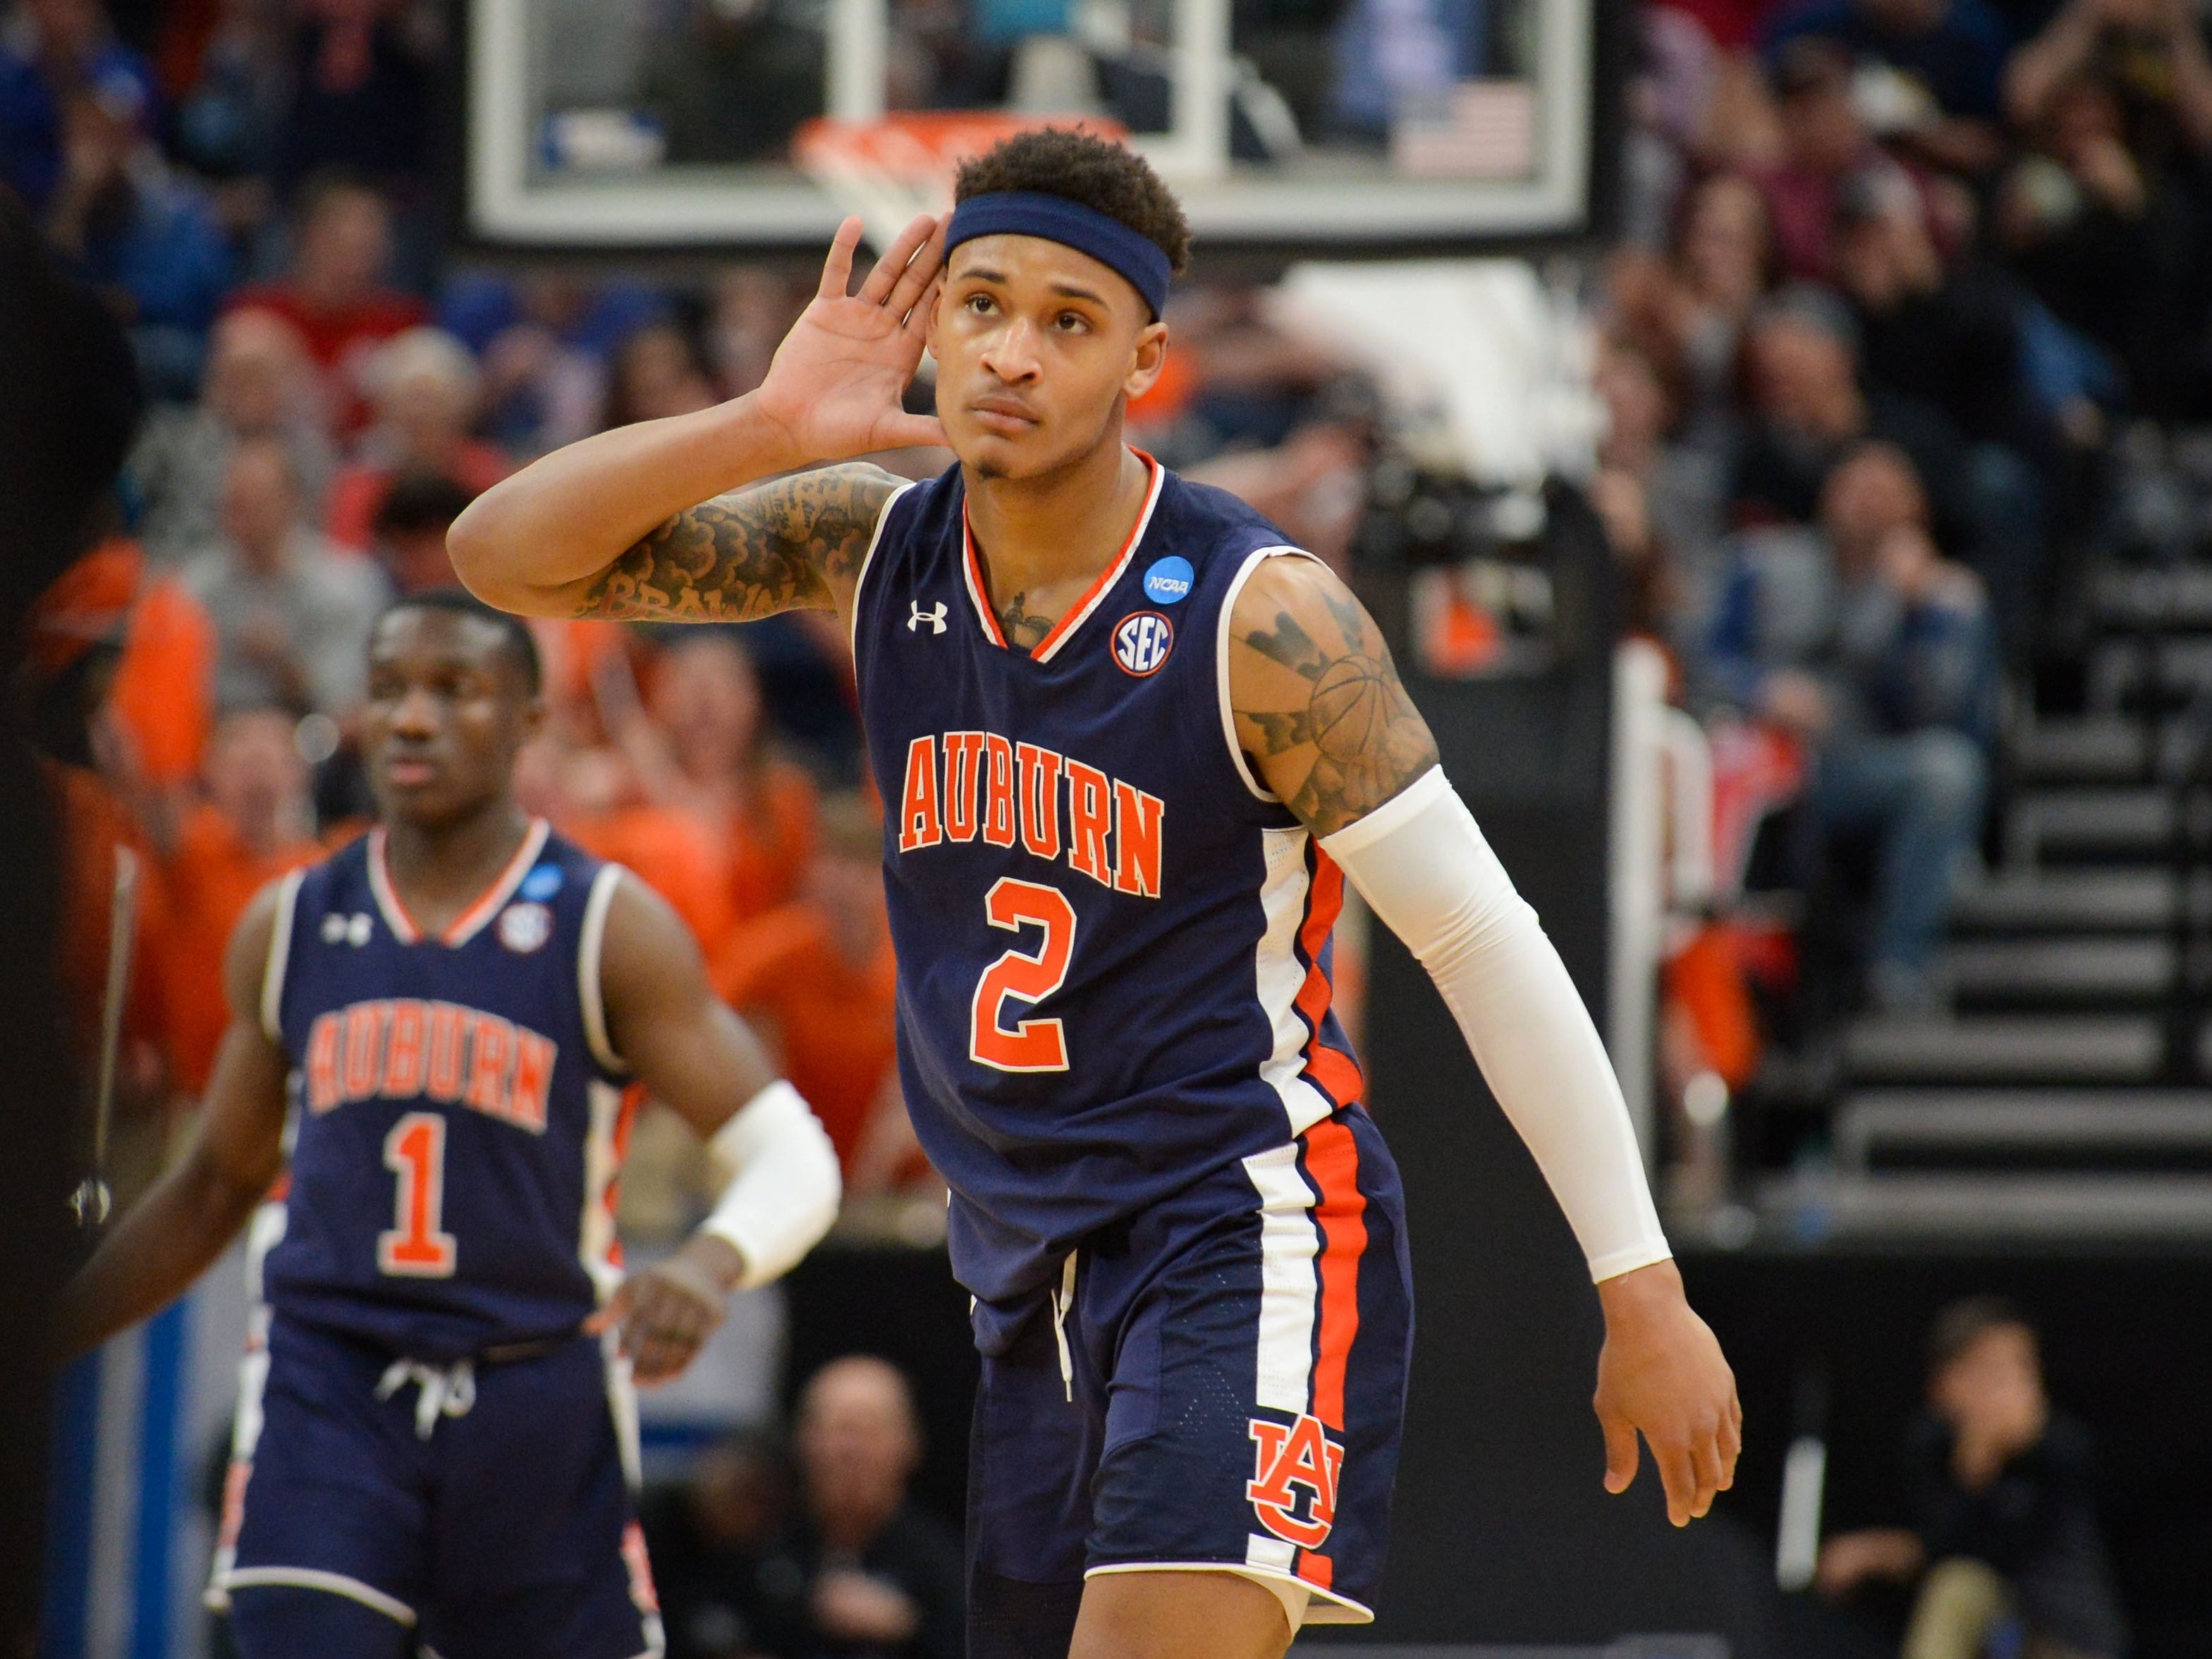 Mar 23, 2019; Salt Lake City, UT, USA; Auburn Tigers guard Bryce Brown (2) reacts during the first half in the second round of the 2019 NCAA Tournament against the Kansas Jayhawks at Vivint Smart Home Arena. Mandatory Credit: Gary A. Vasquez-USA TODAY Sports